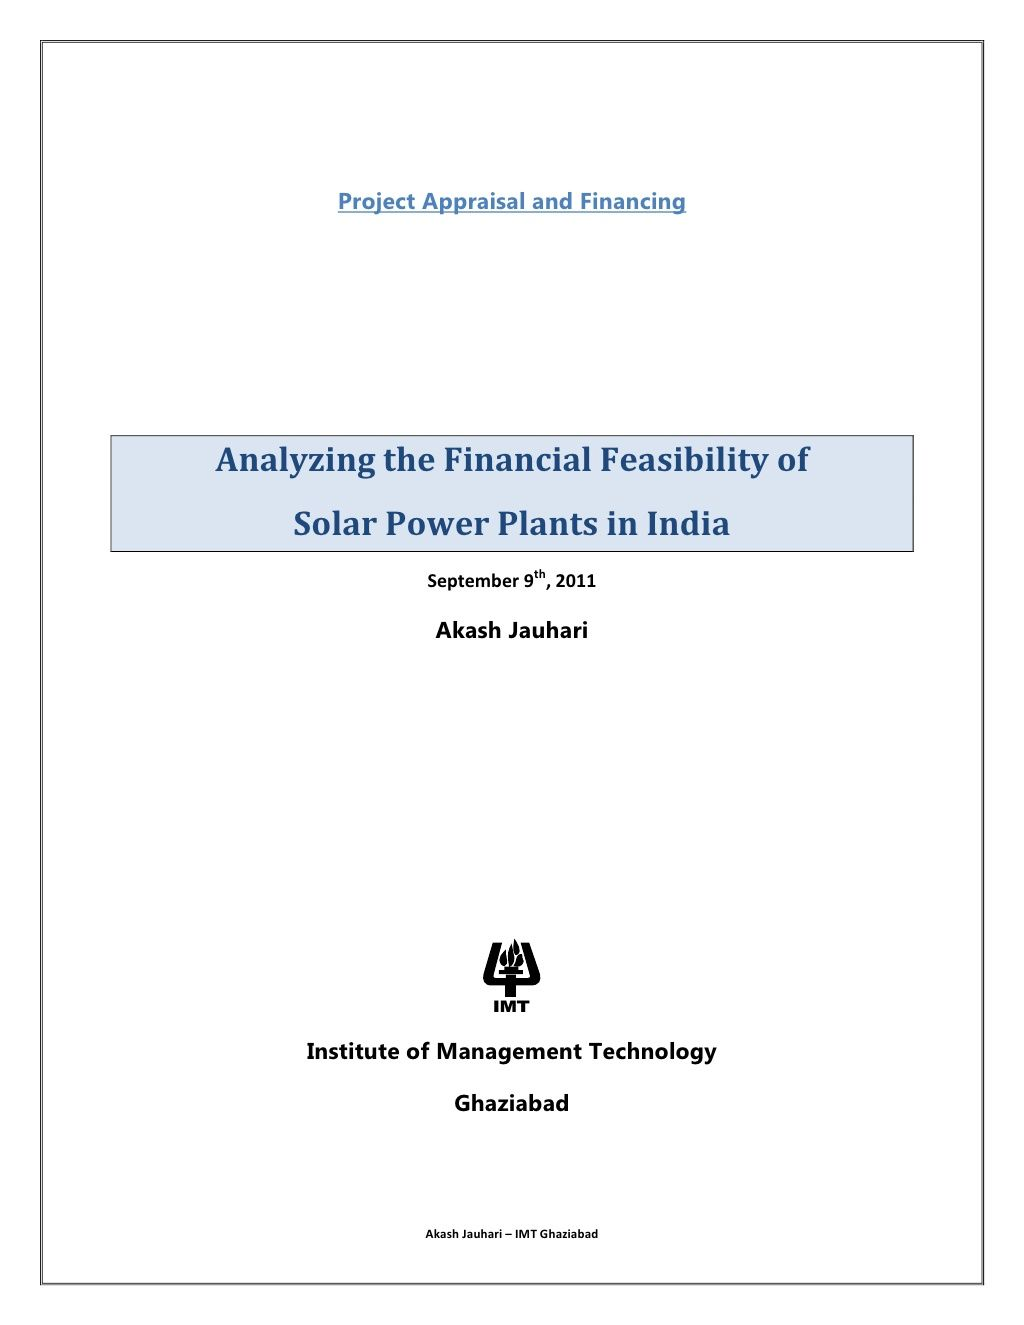 financial-feasibility-of-solar-power-plant-in-india by Akash Jauhari via Slideshare